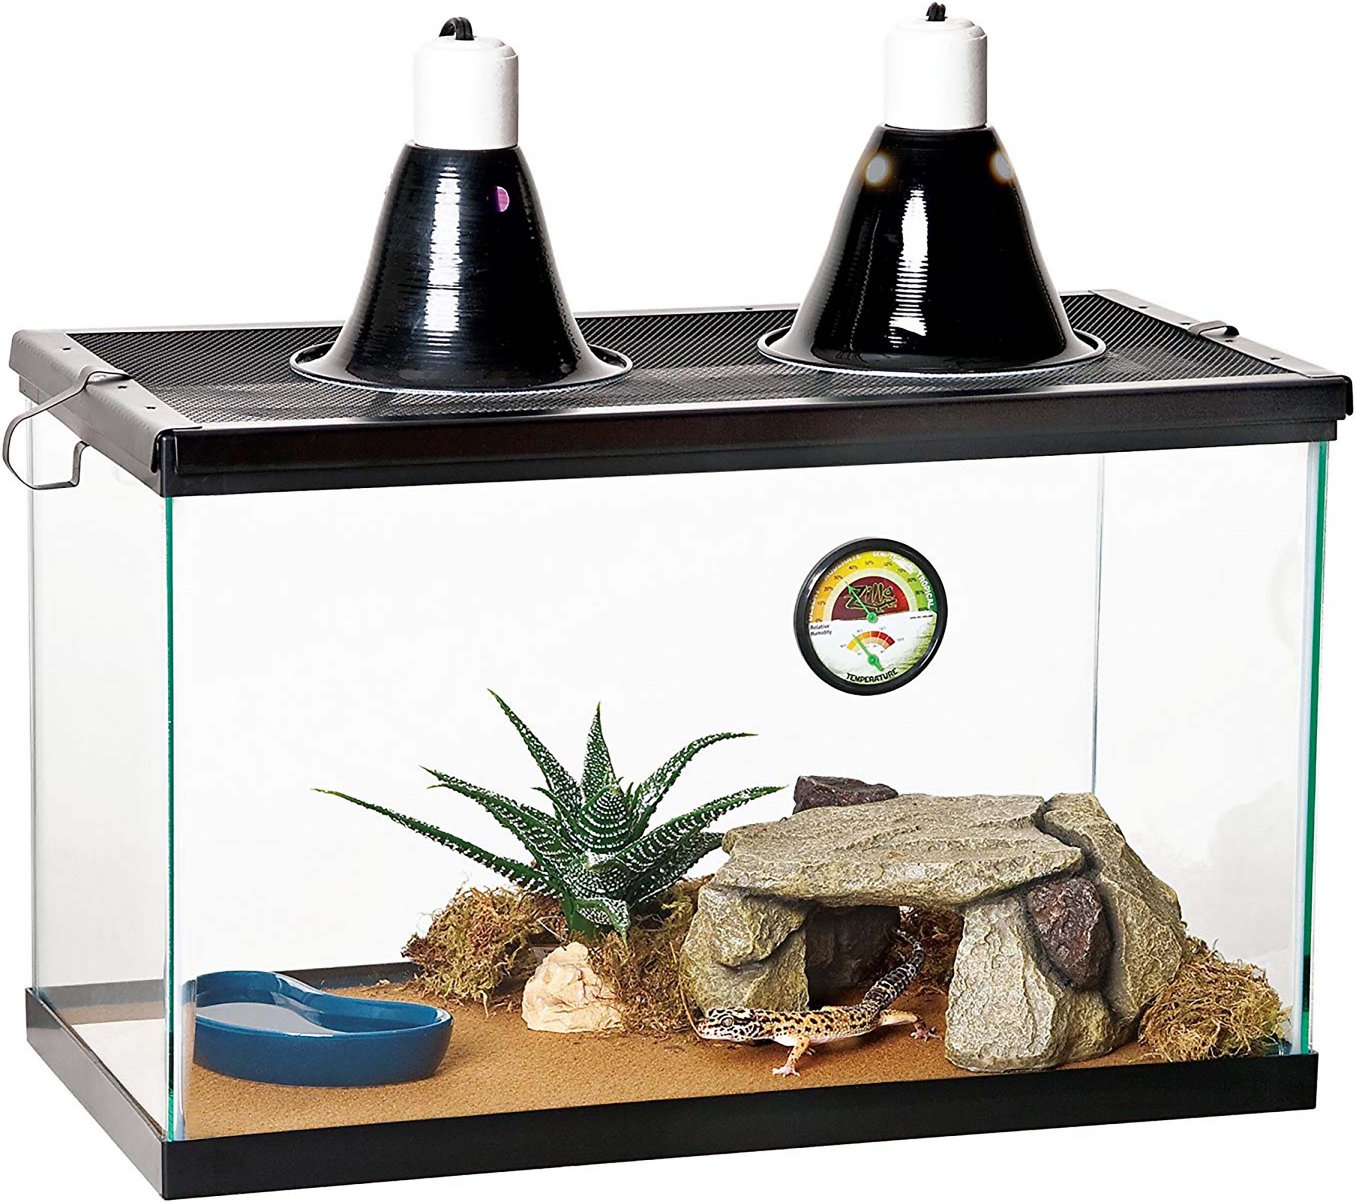 Zilla Desert Reptile Terrarium Starter Kit With Light And Heat 10 Gal Chewy Com